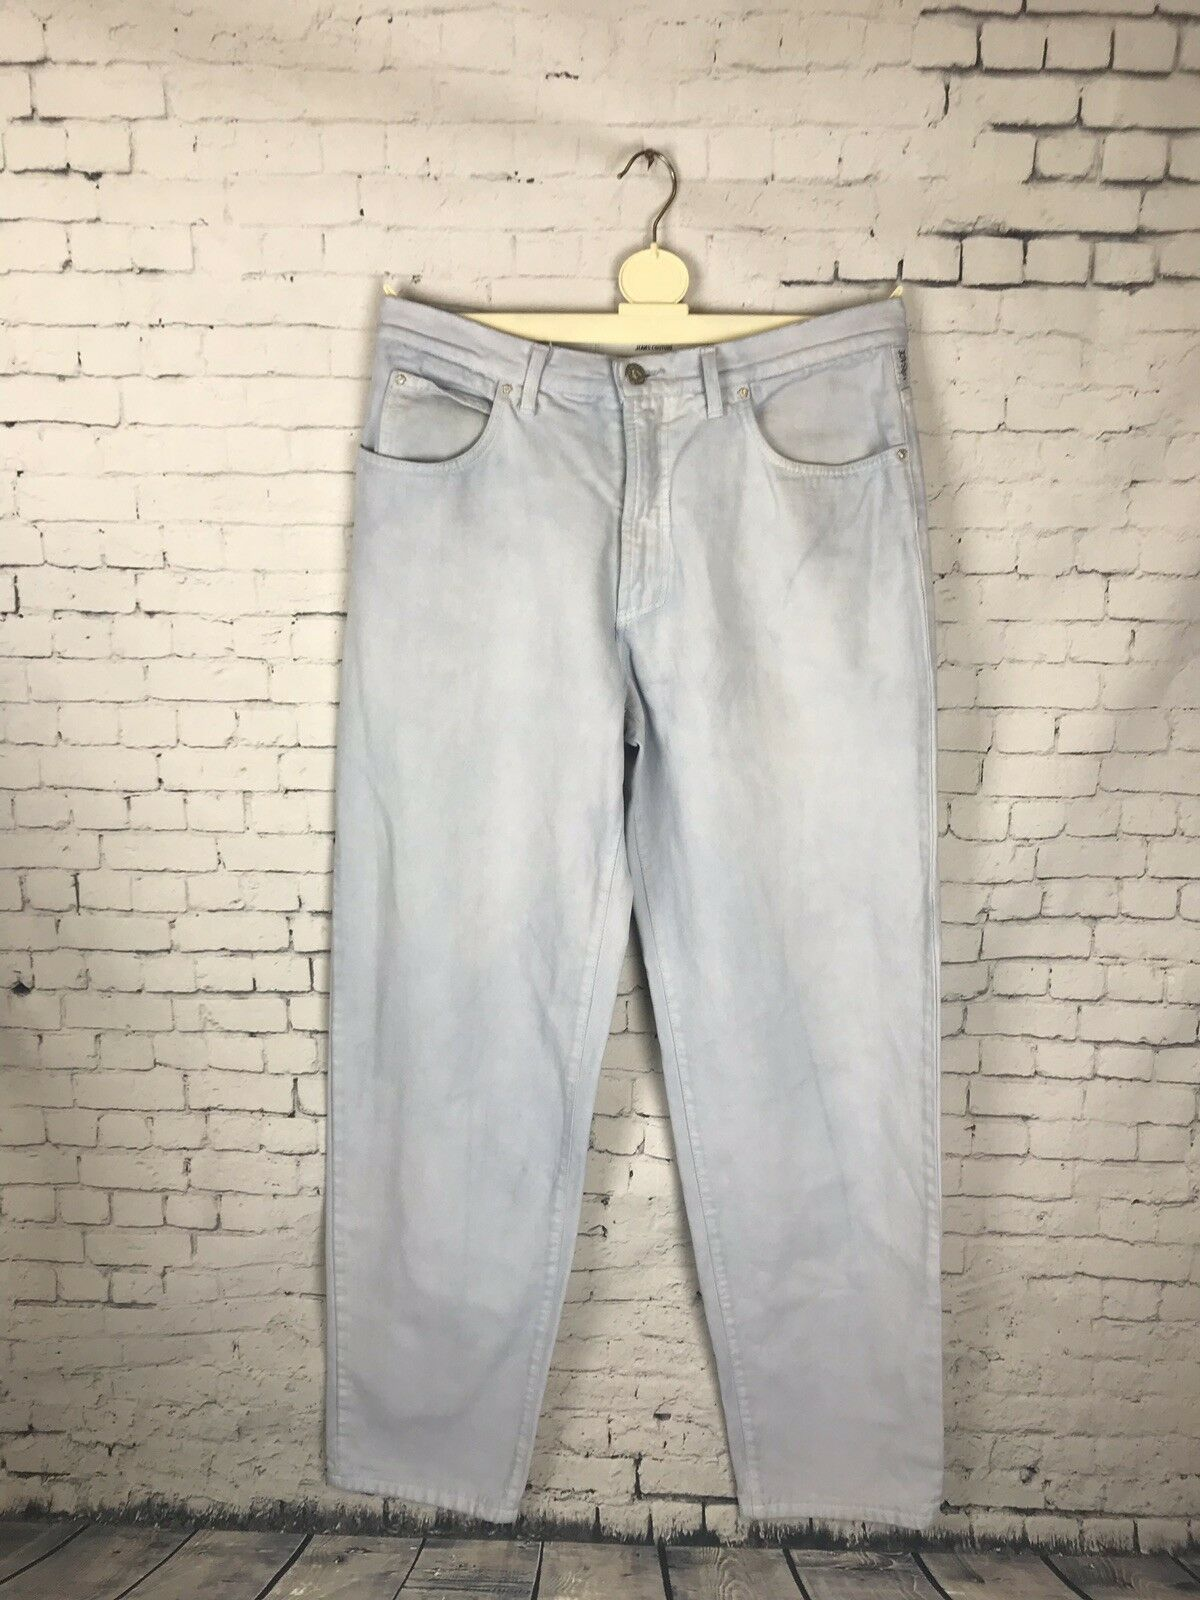 Stunning Mens Vintage VERSACE Jeans Couture Jeans   W36   Standard Leg   A57